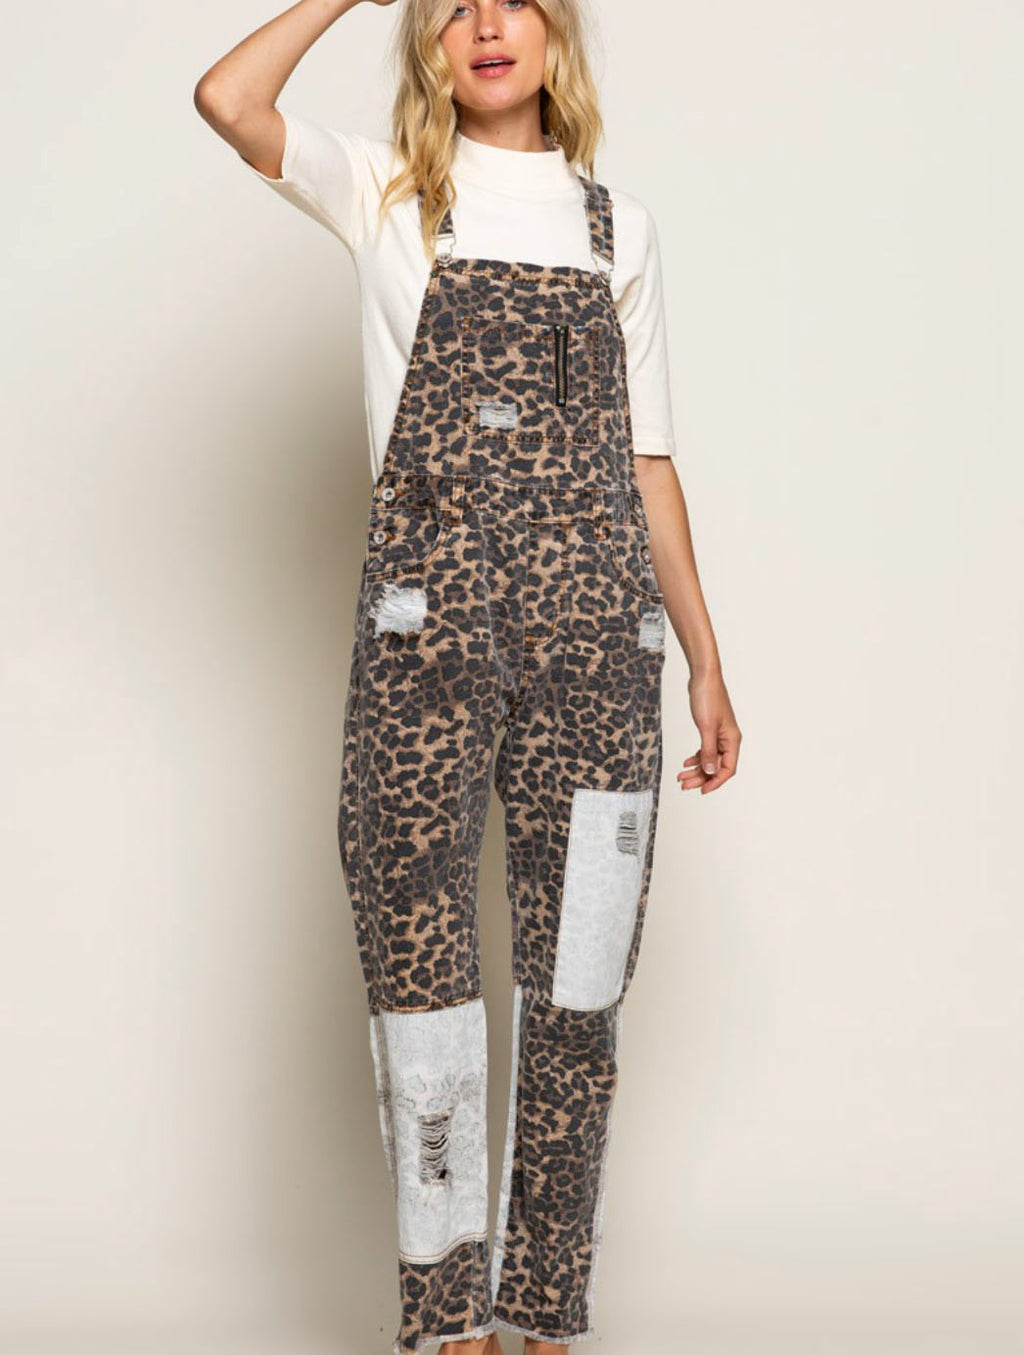 POL Overalls in Camel Leopard